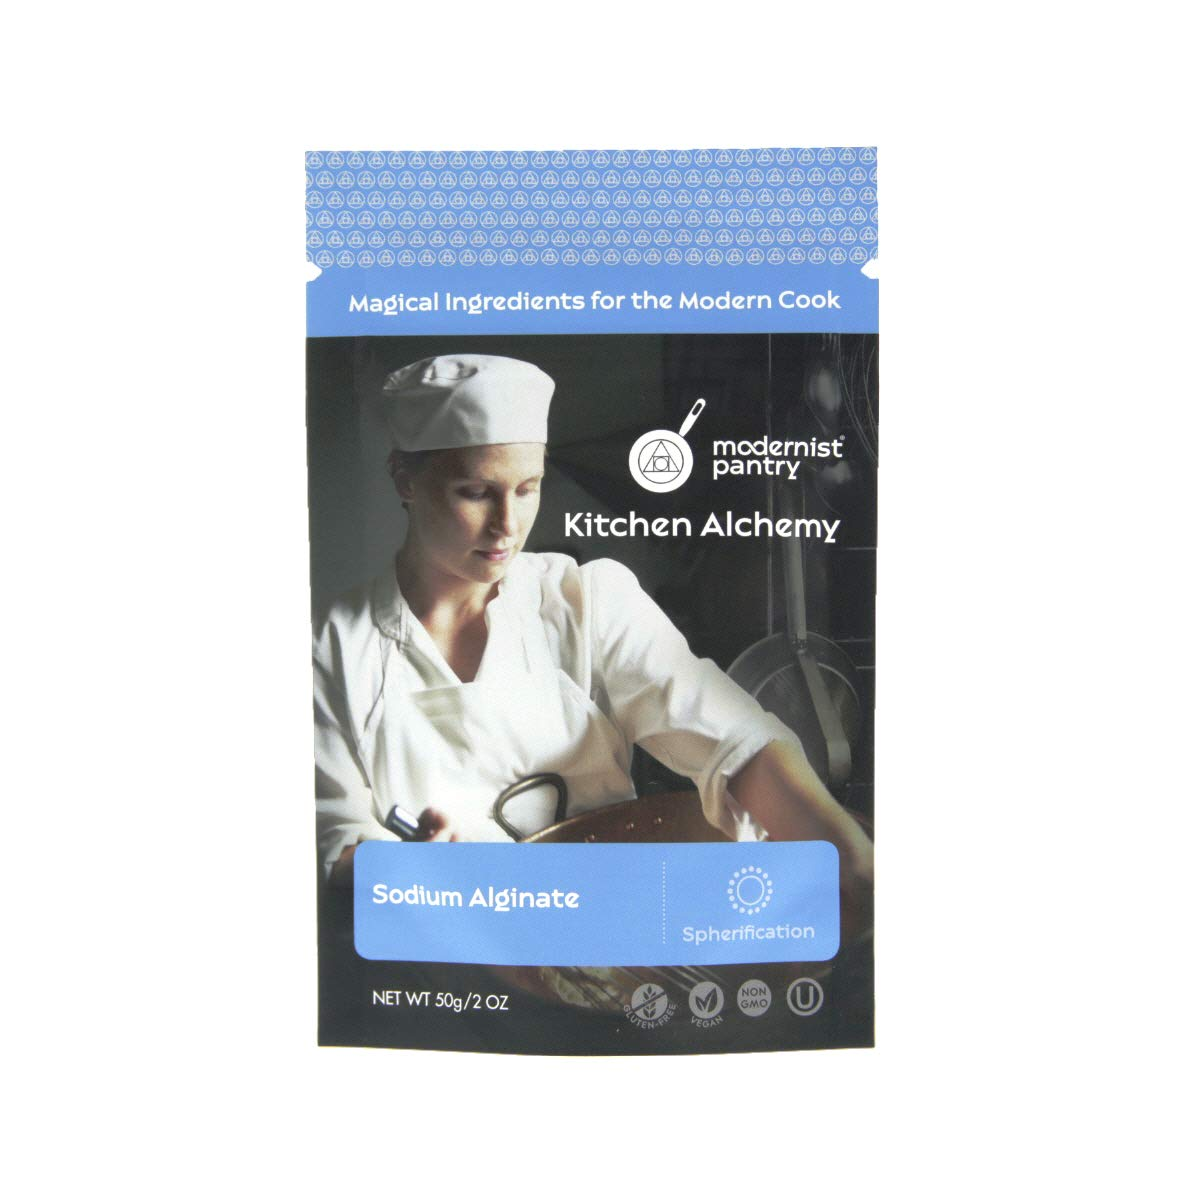 Pure Sodium Alginate (Molecular Gastronomy) ⊘ Non-GMO ☮ Vegan ✡ OU Kosher Certified - 50g/2oz